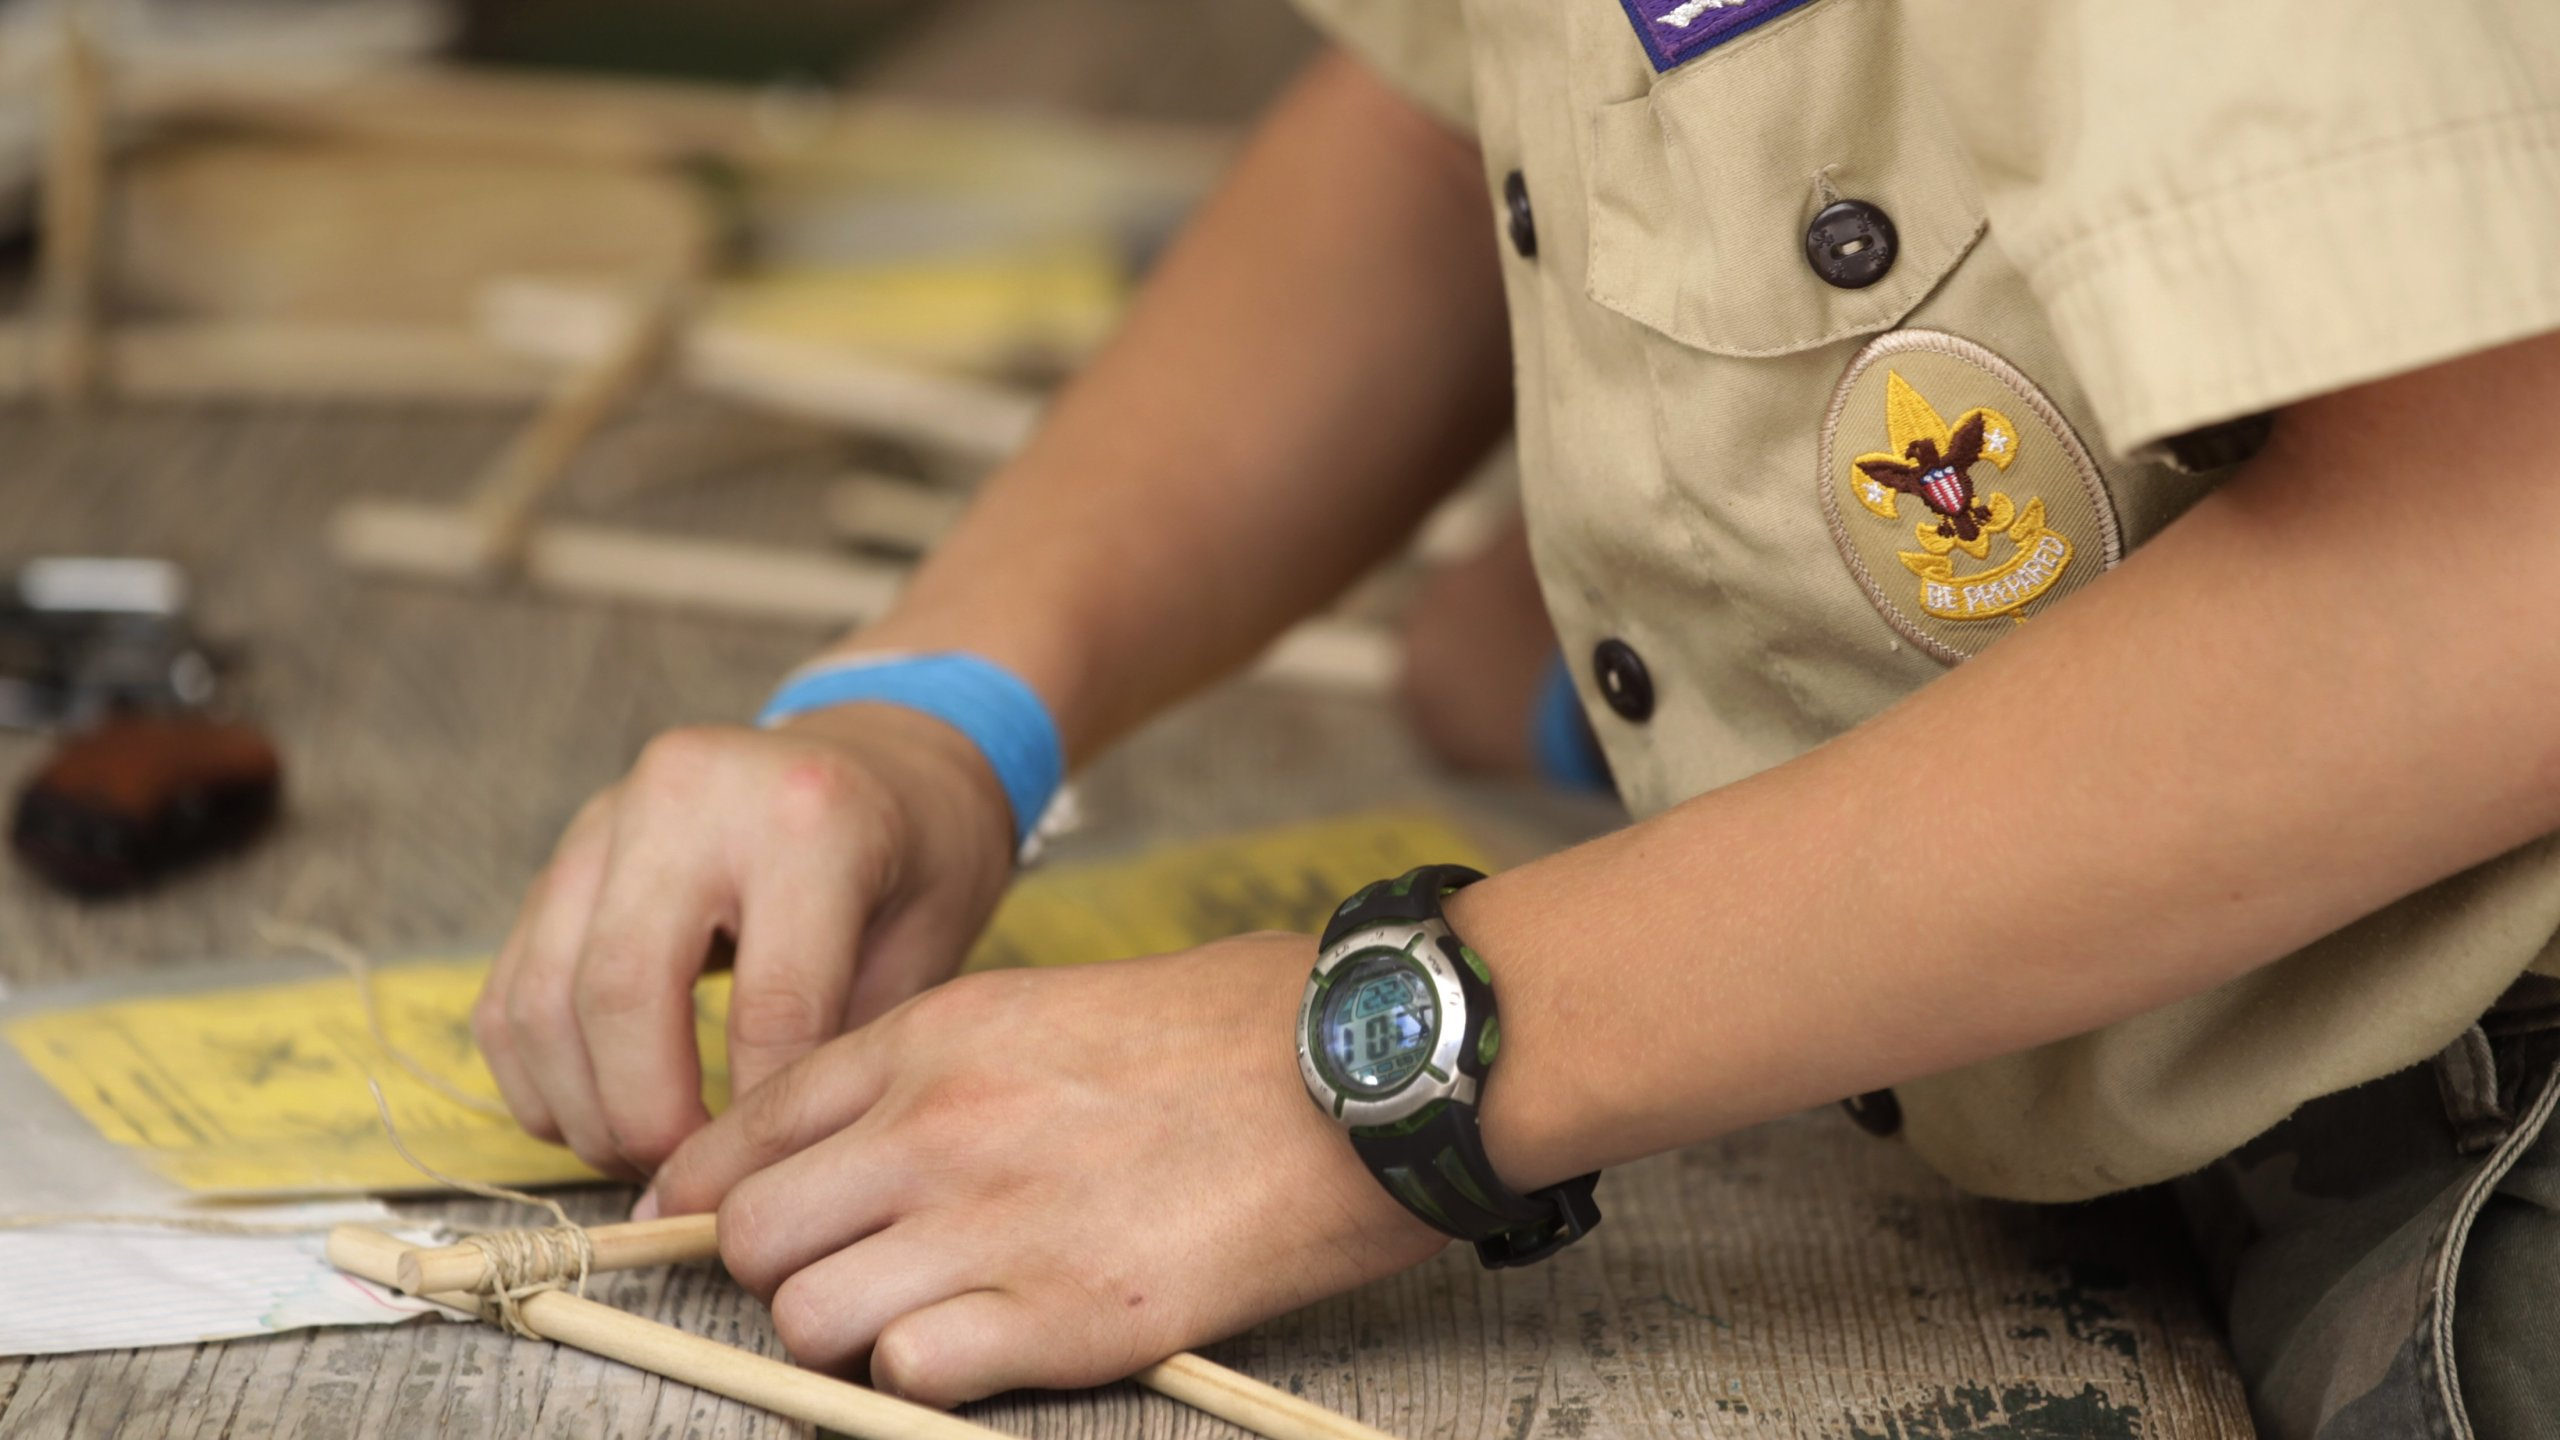 Boy Scouts work on a wood project at camp Maple Dell outside Payson, Utah, on July 31, 2015. (Credit: George Frey / Getty Images)